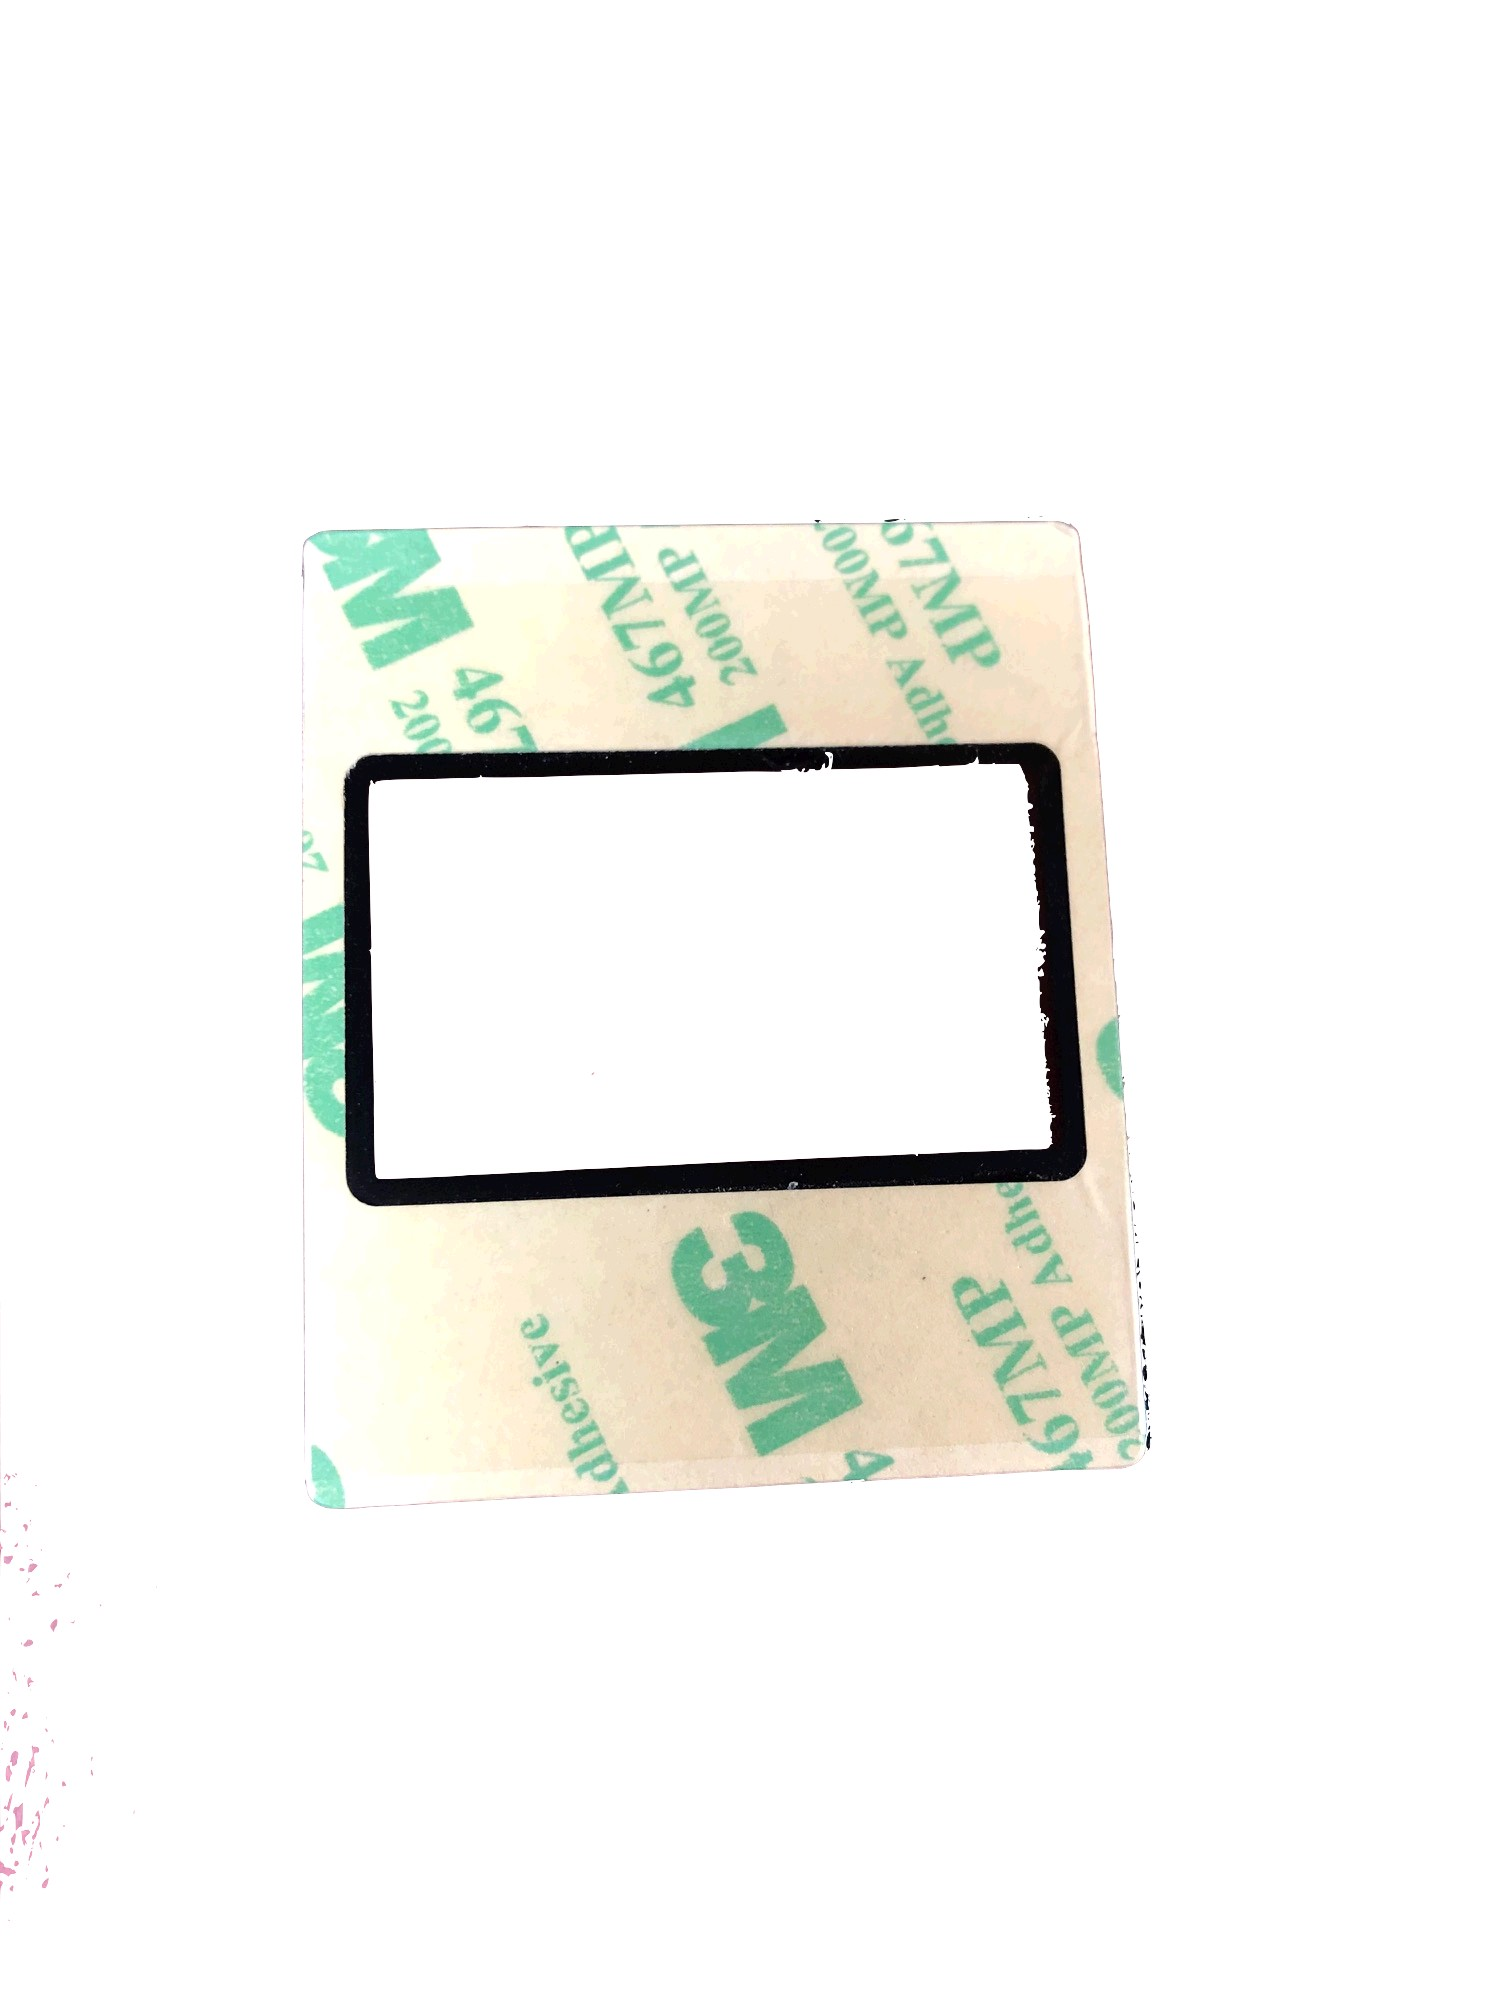 K223814601  LCD COVER SHEET(POLYCARBONATE)